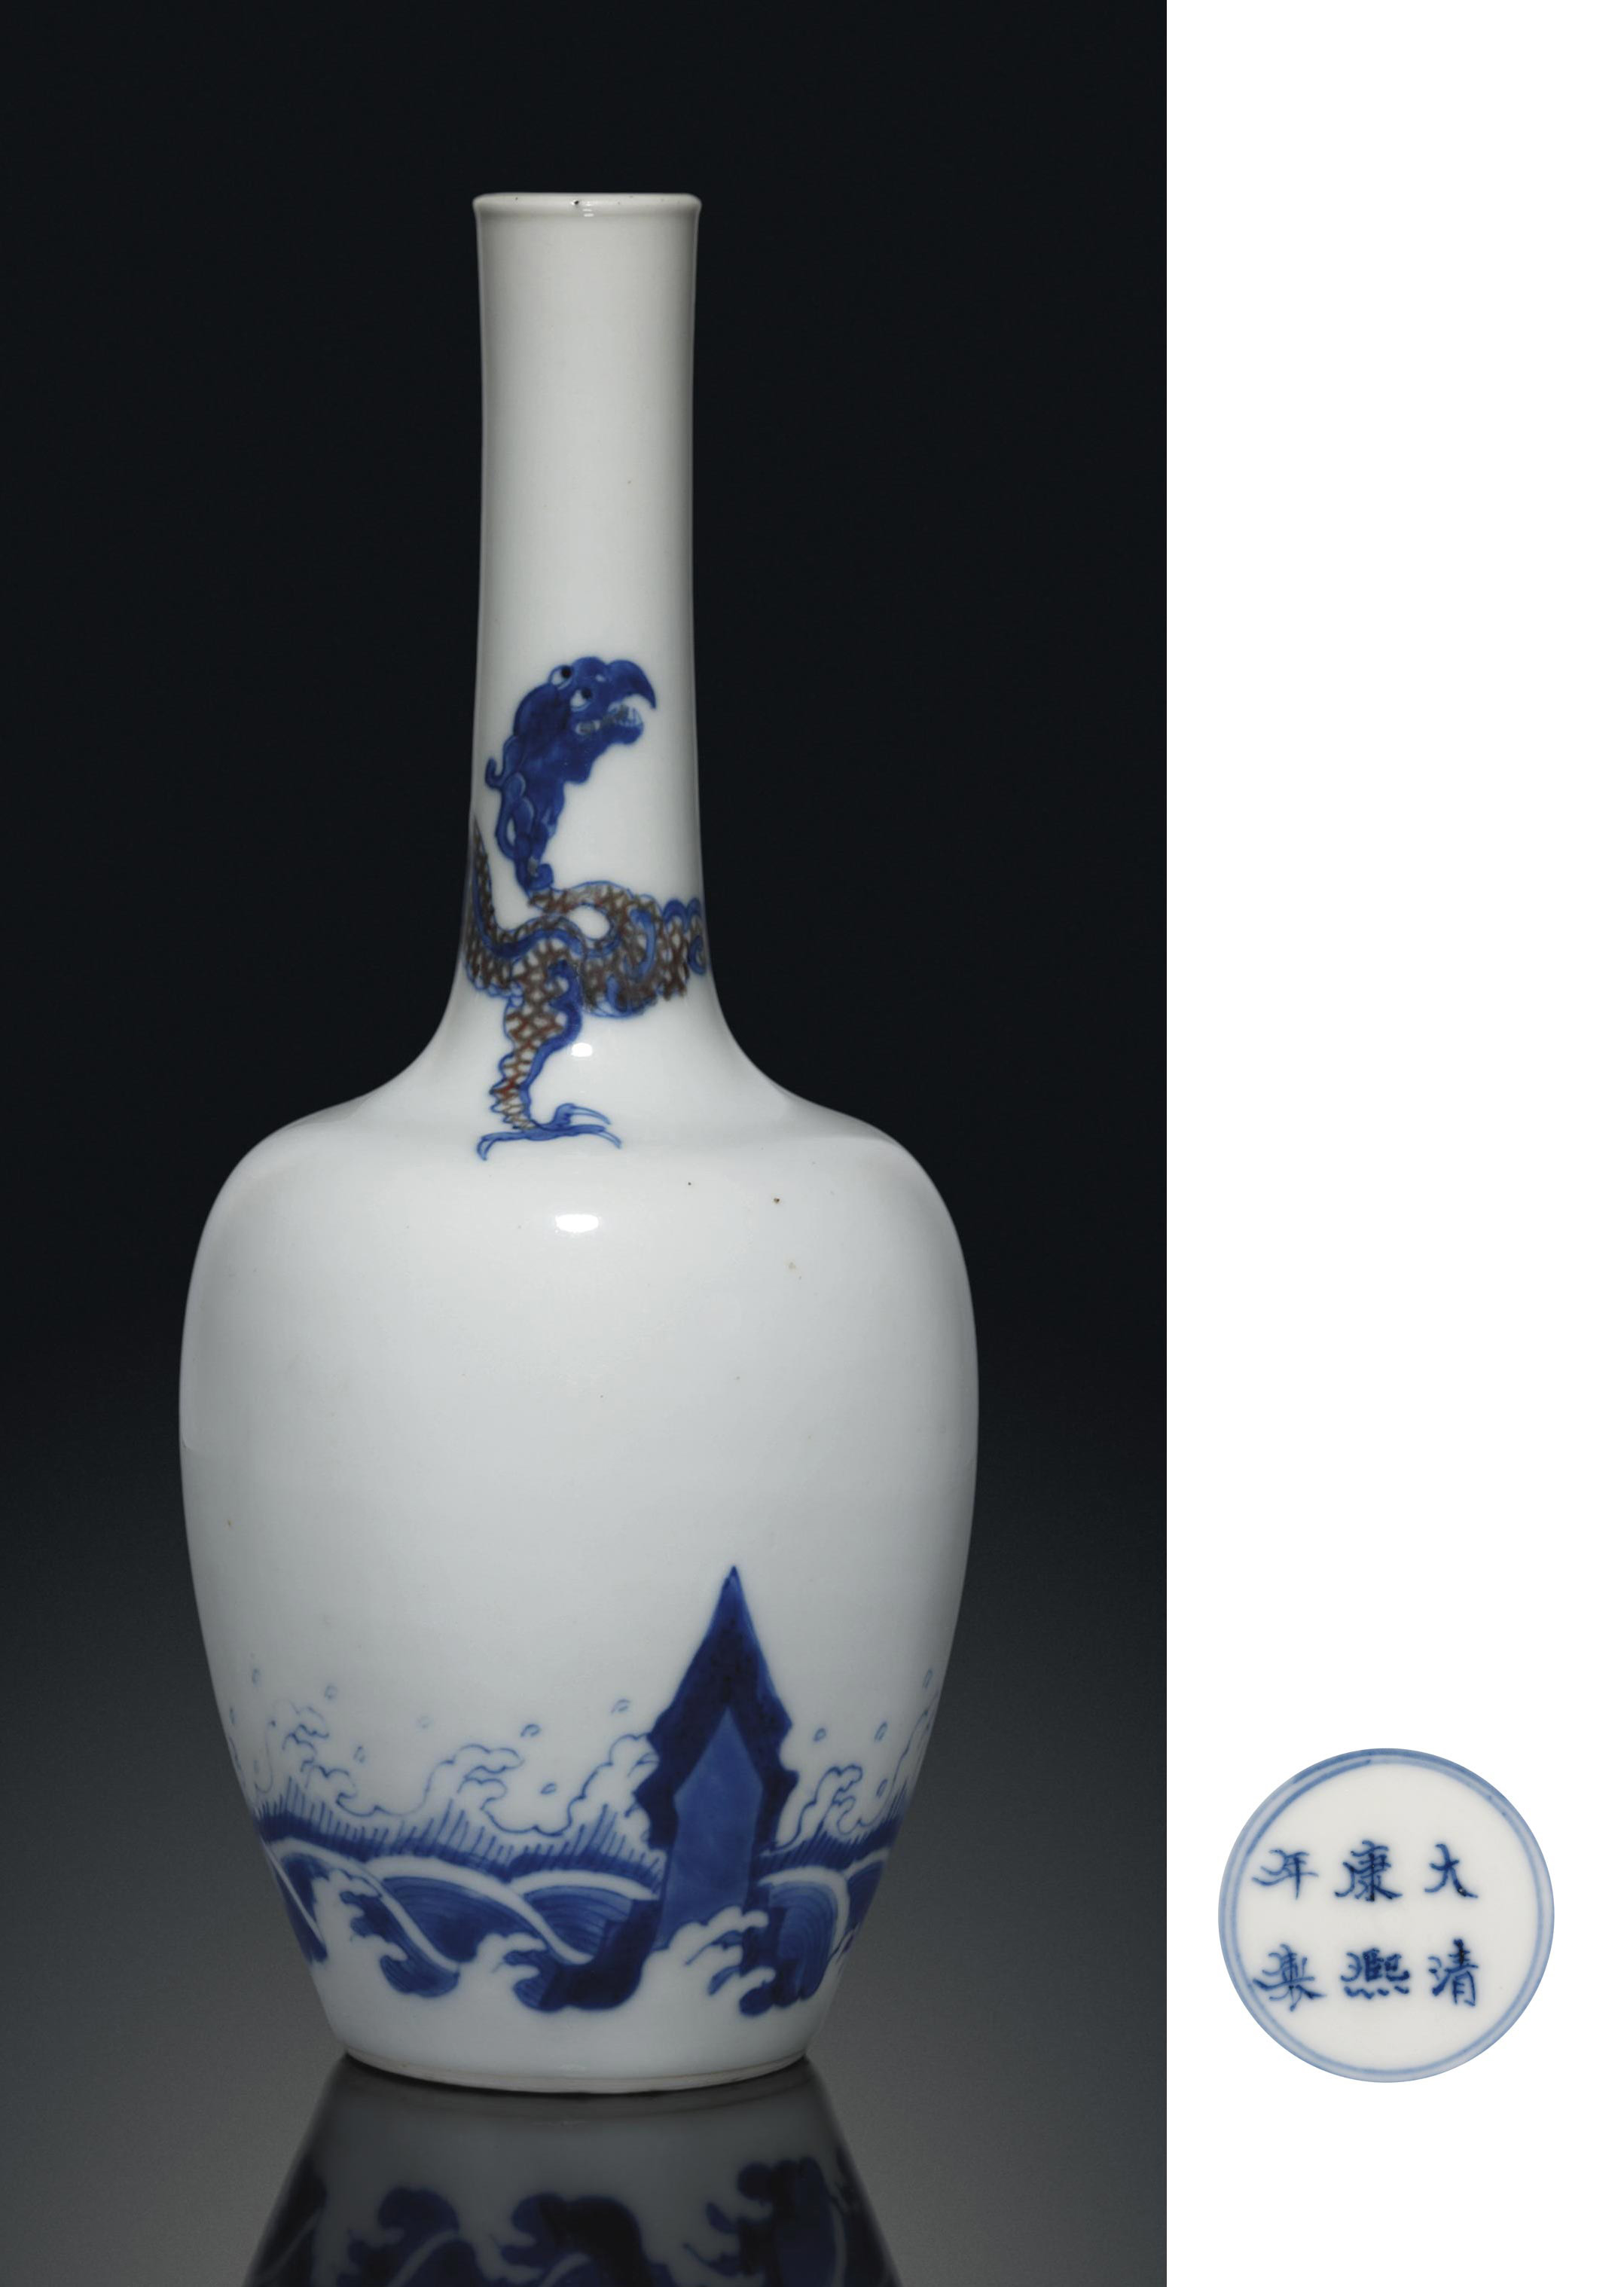 AN UNDERGLAZE BLUE AND COPPER-RED-DECORATED 'DRAGON' BOTTLE VASE